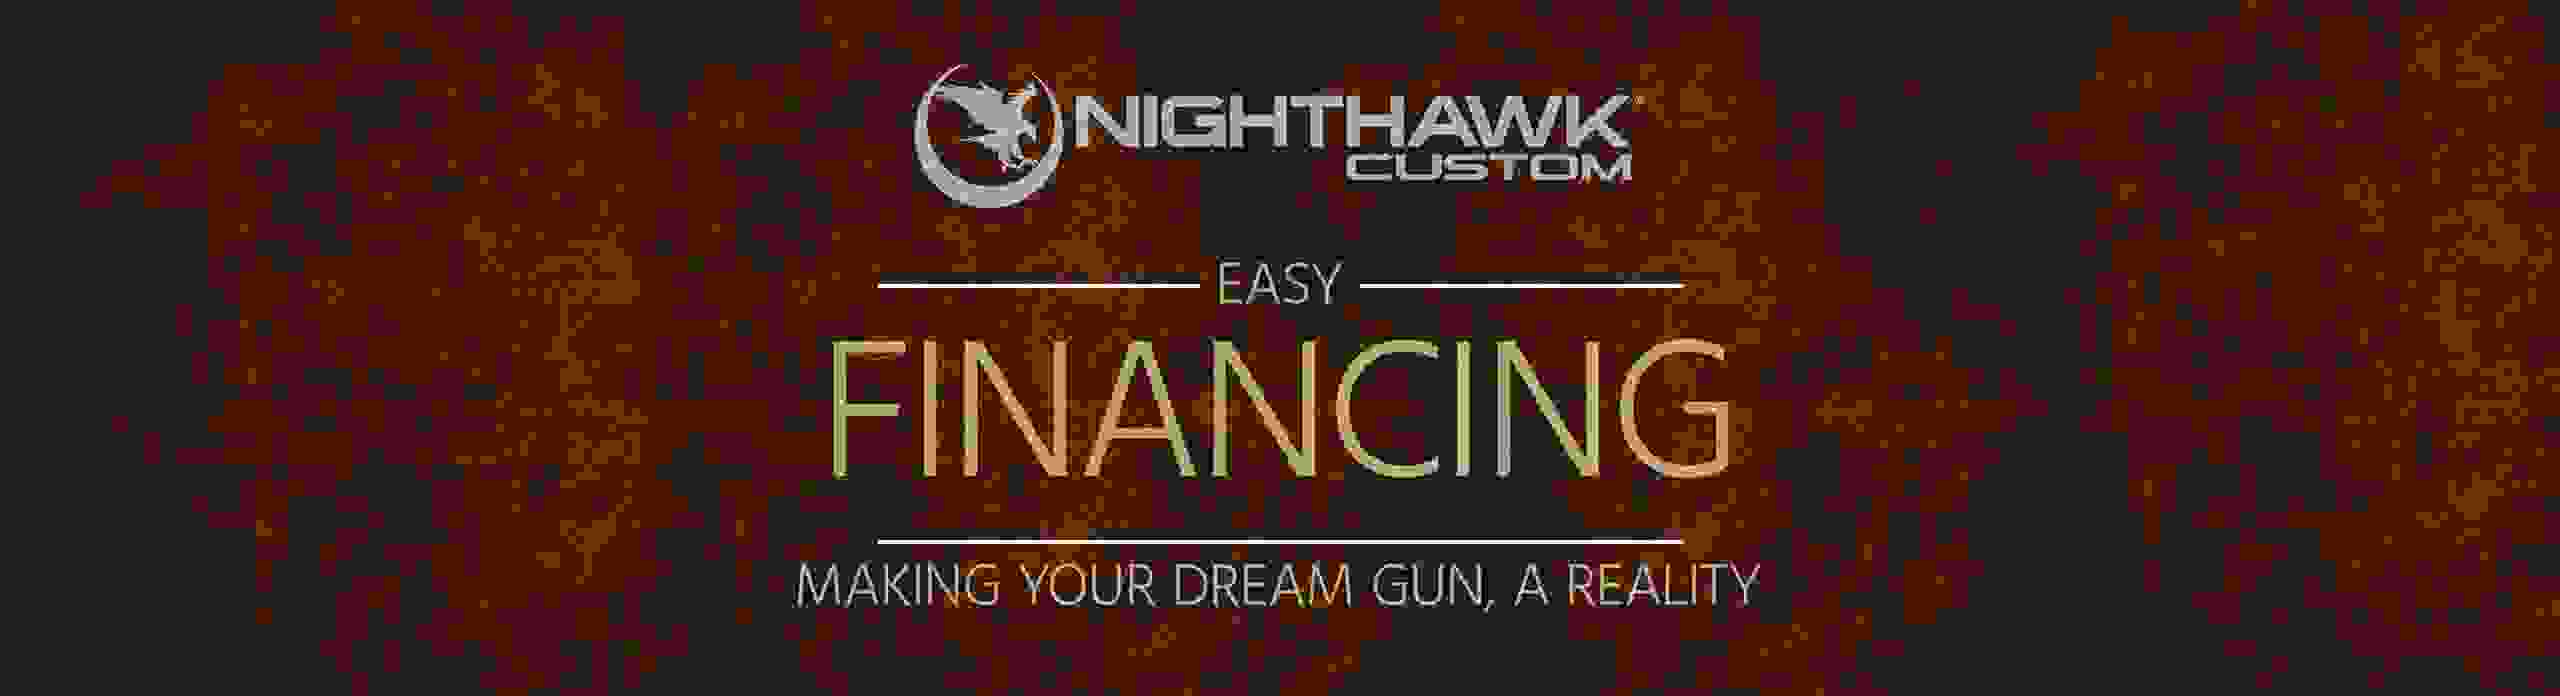 https://www.nighthawkcustom.com/financing